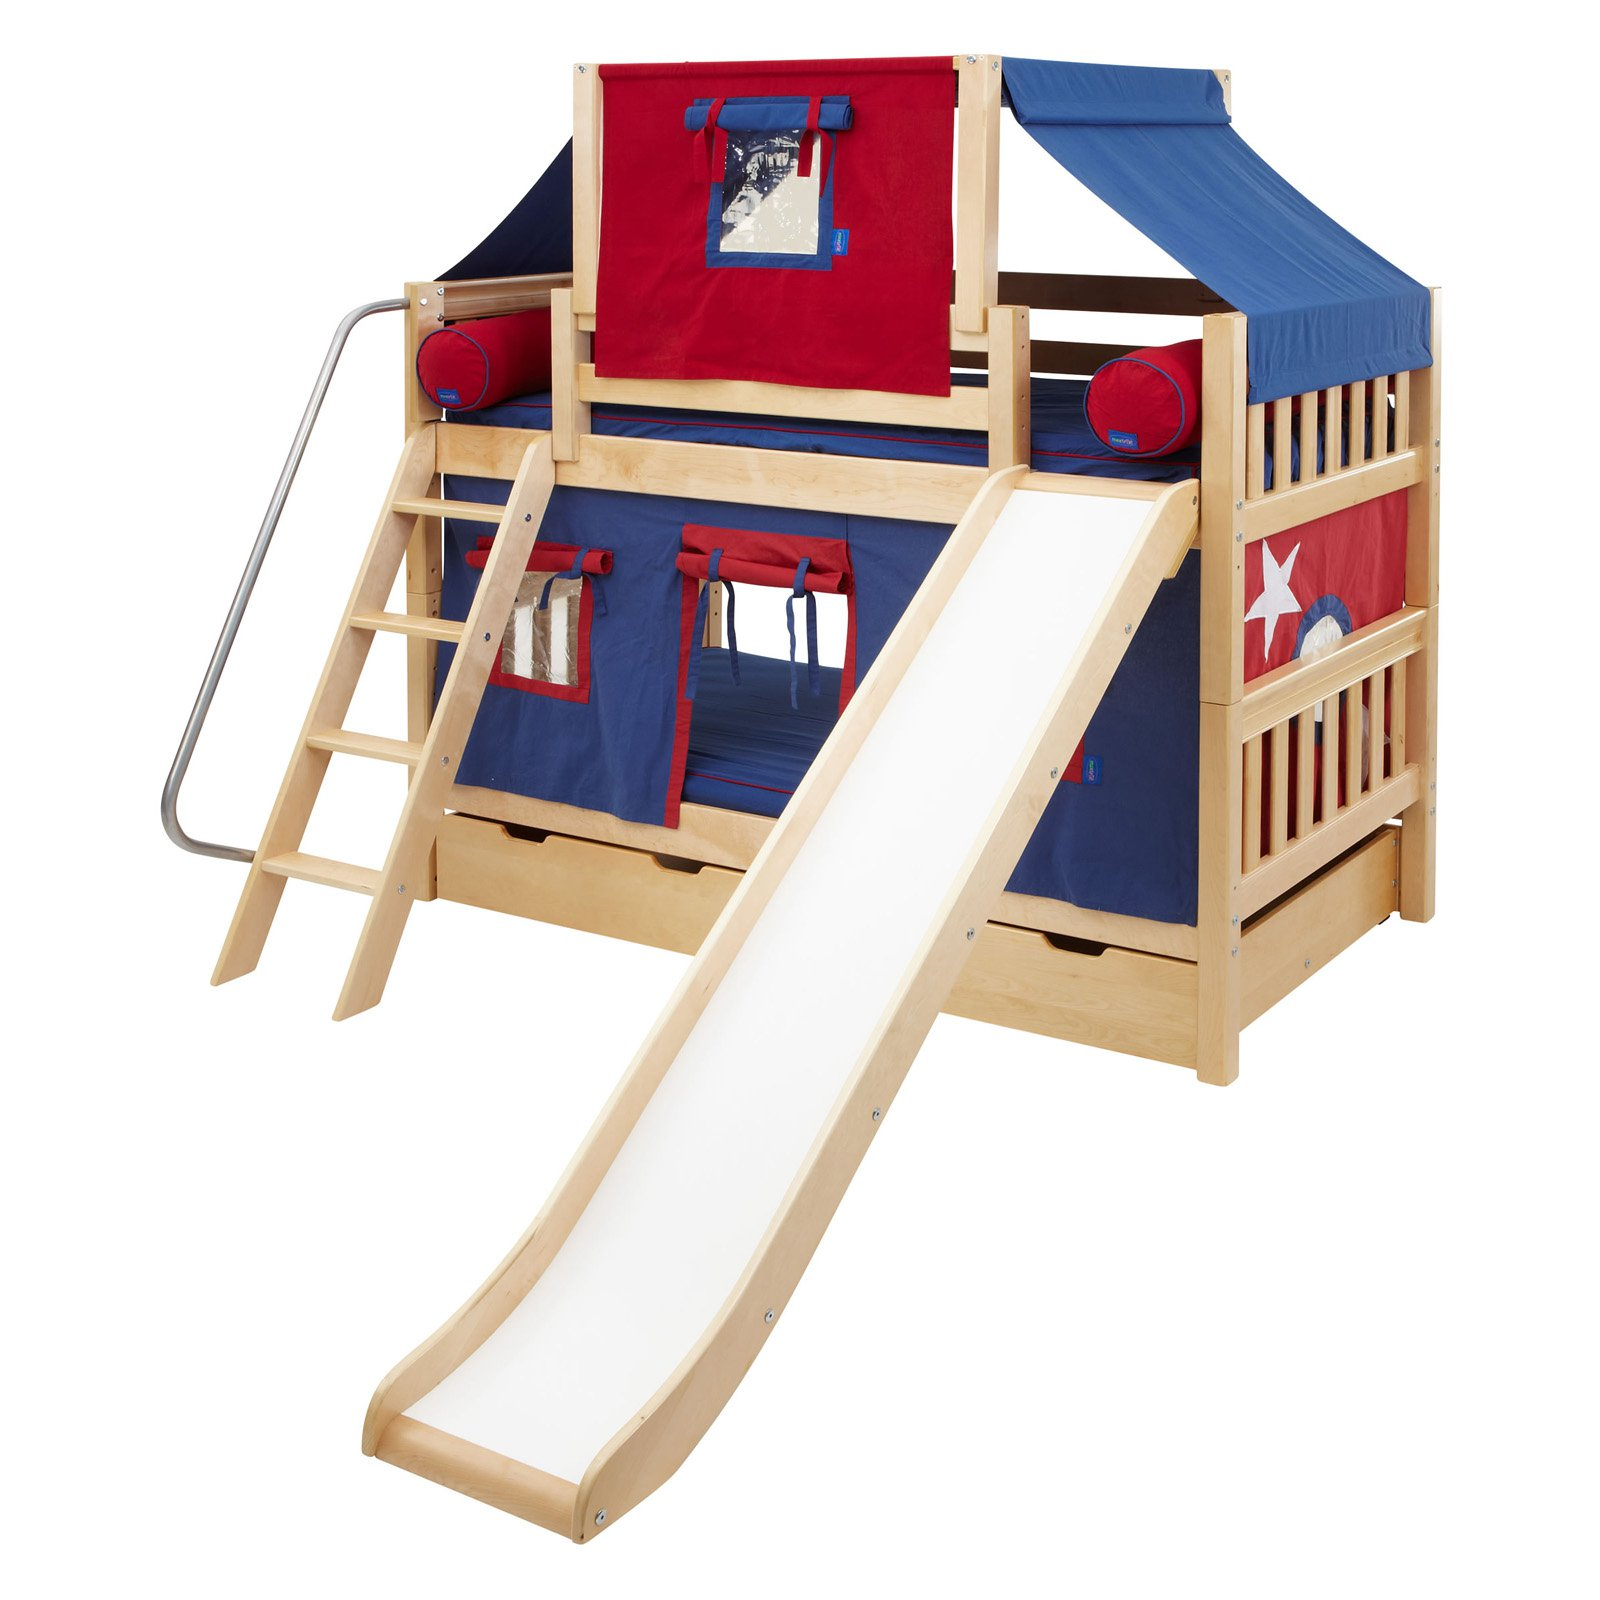 Bunk bed with slide walmart - Bunk Bed With Slide Walmart 25